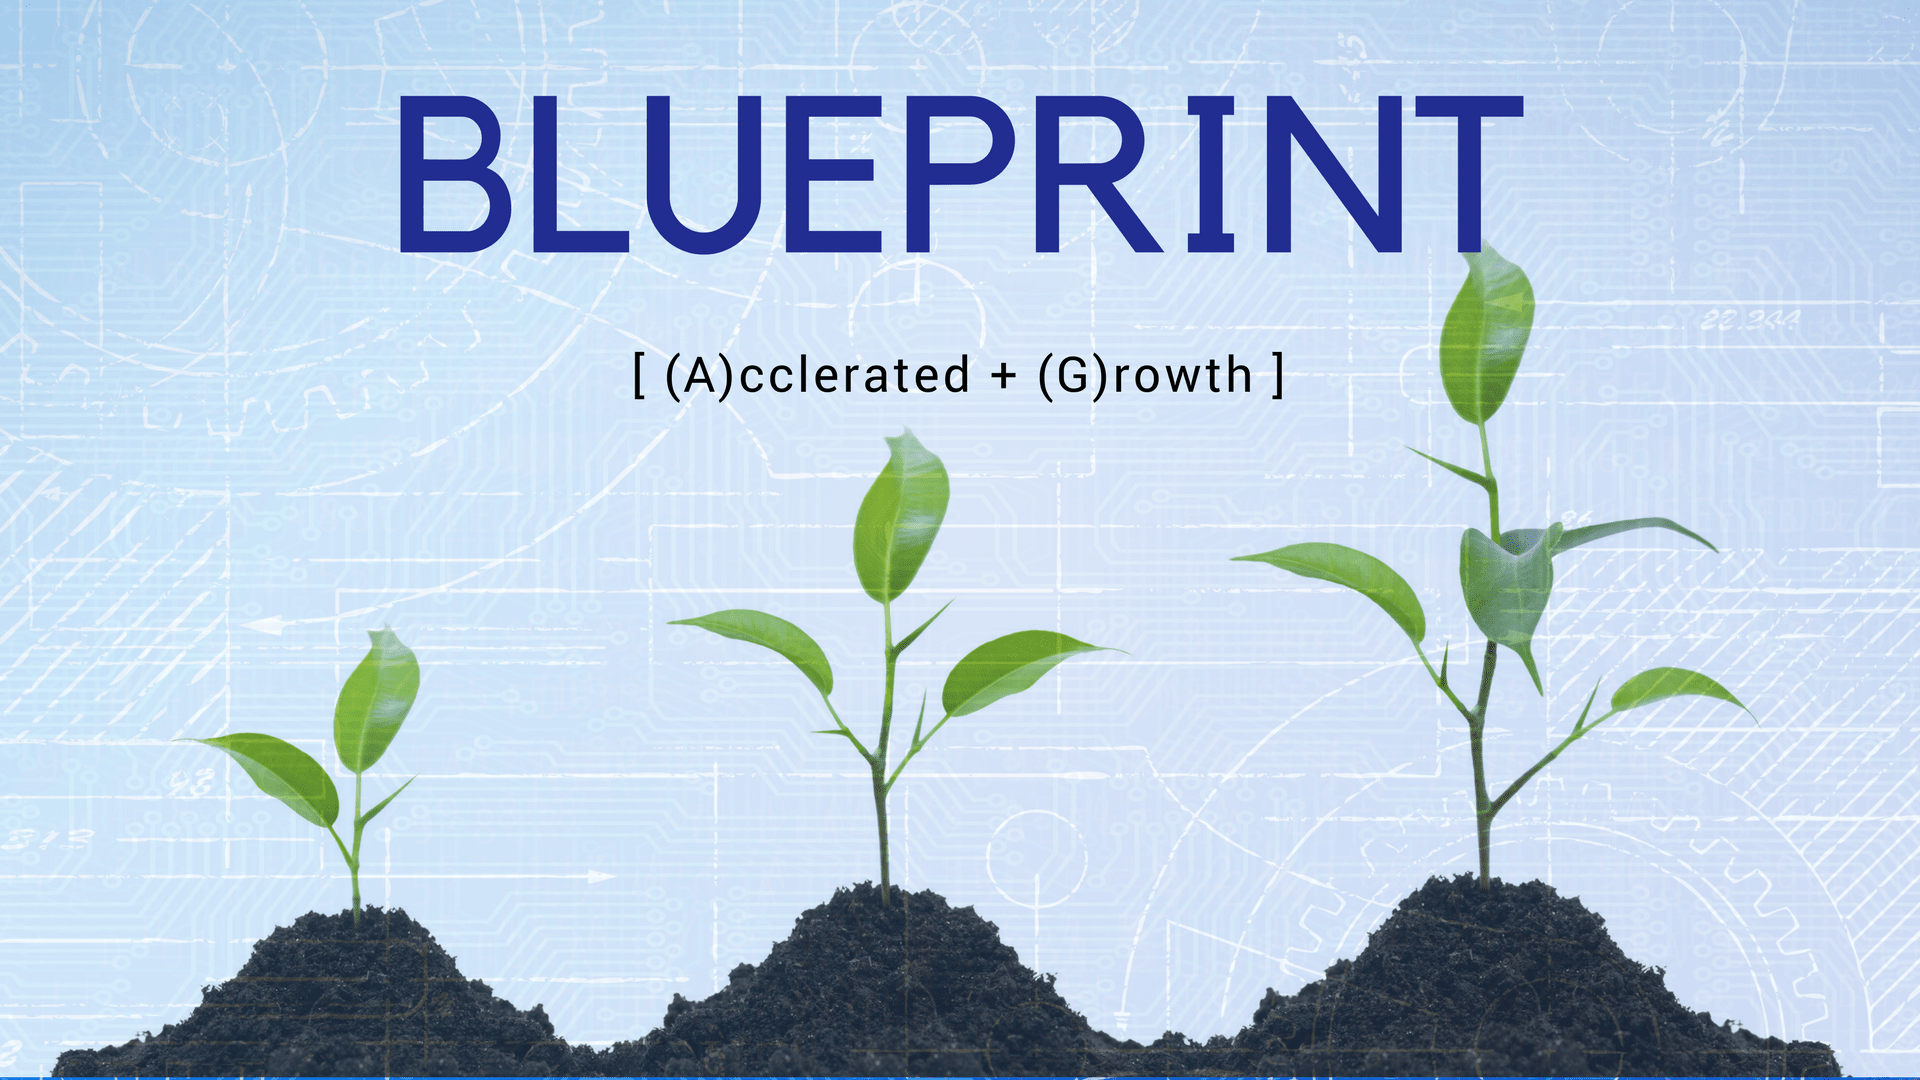 Digital main street media blueprint for accelerated growth digital main street media blueprint for accelerated growth digital main street media malvernweather Choice Image